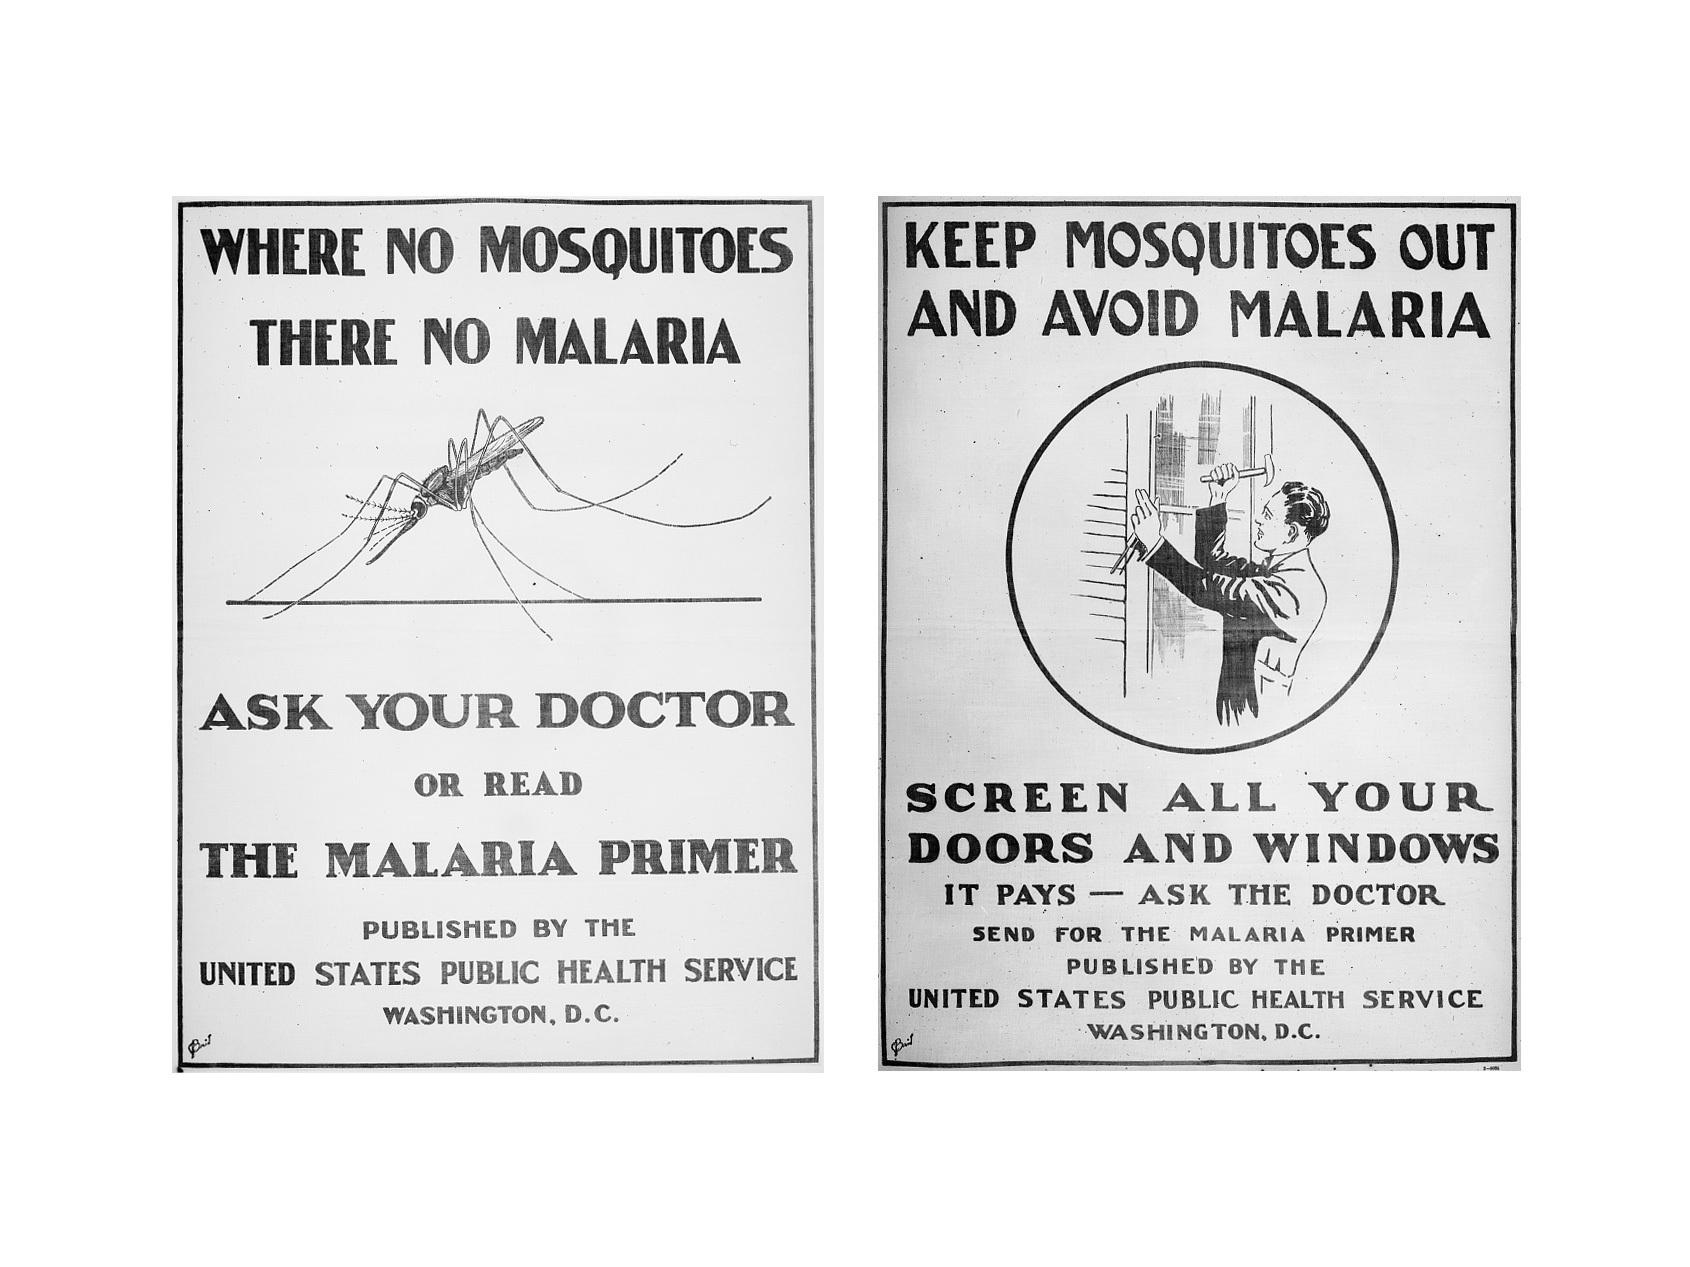 Ghana, Kenya and Malawi to get first Malaria vaccine